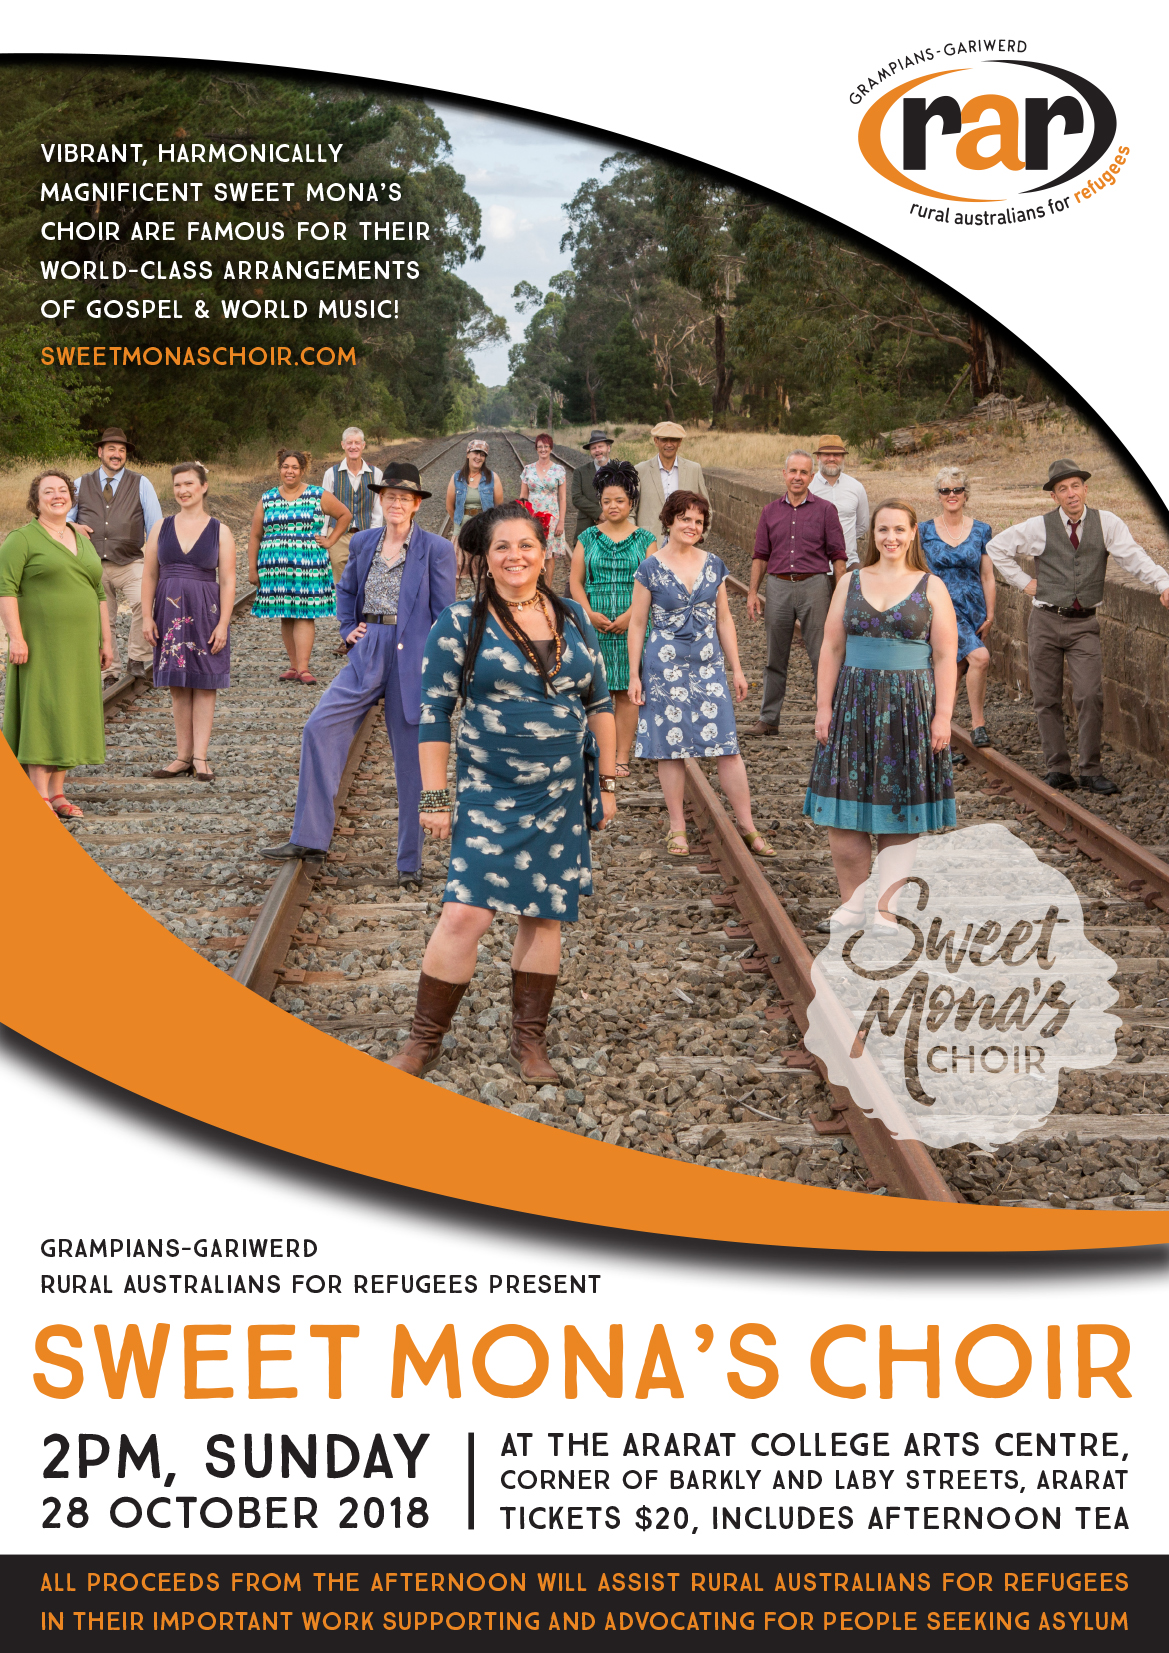 Sweet Mona's Choir | Harmonically Magnificent